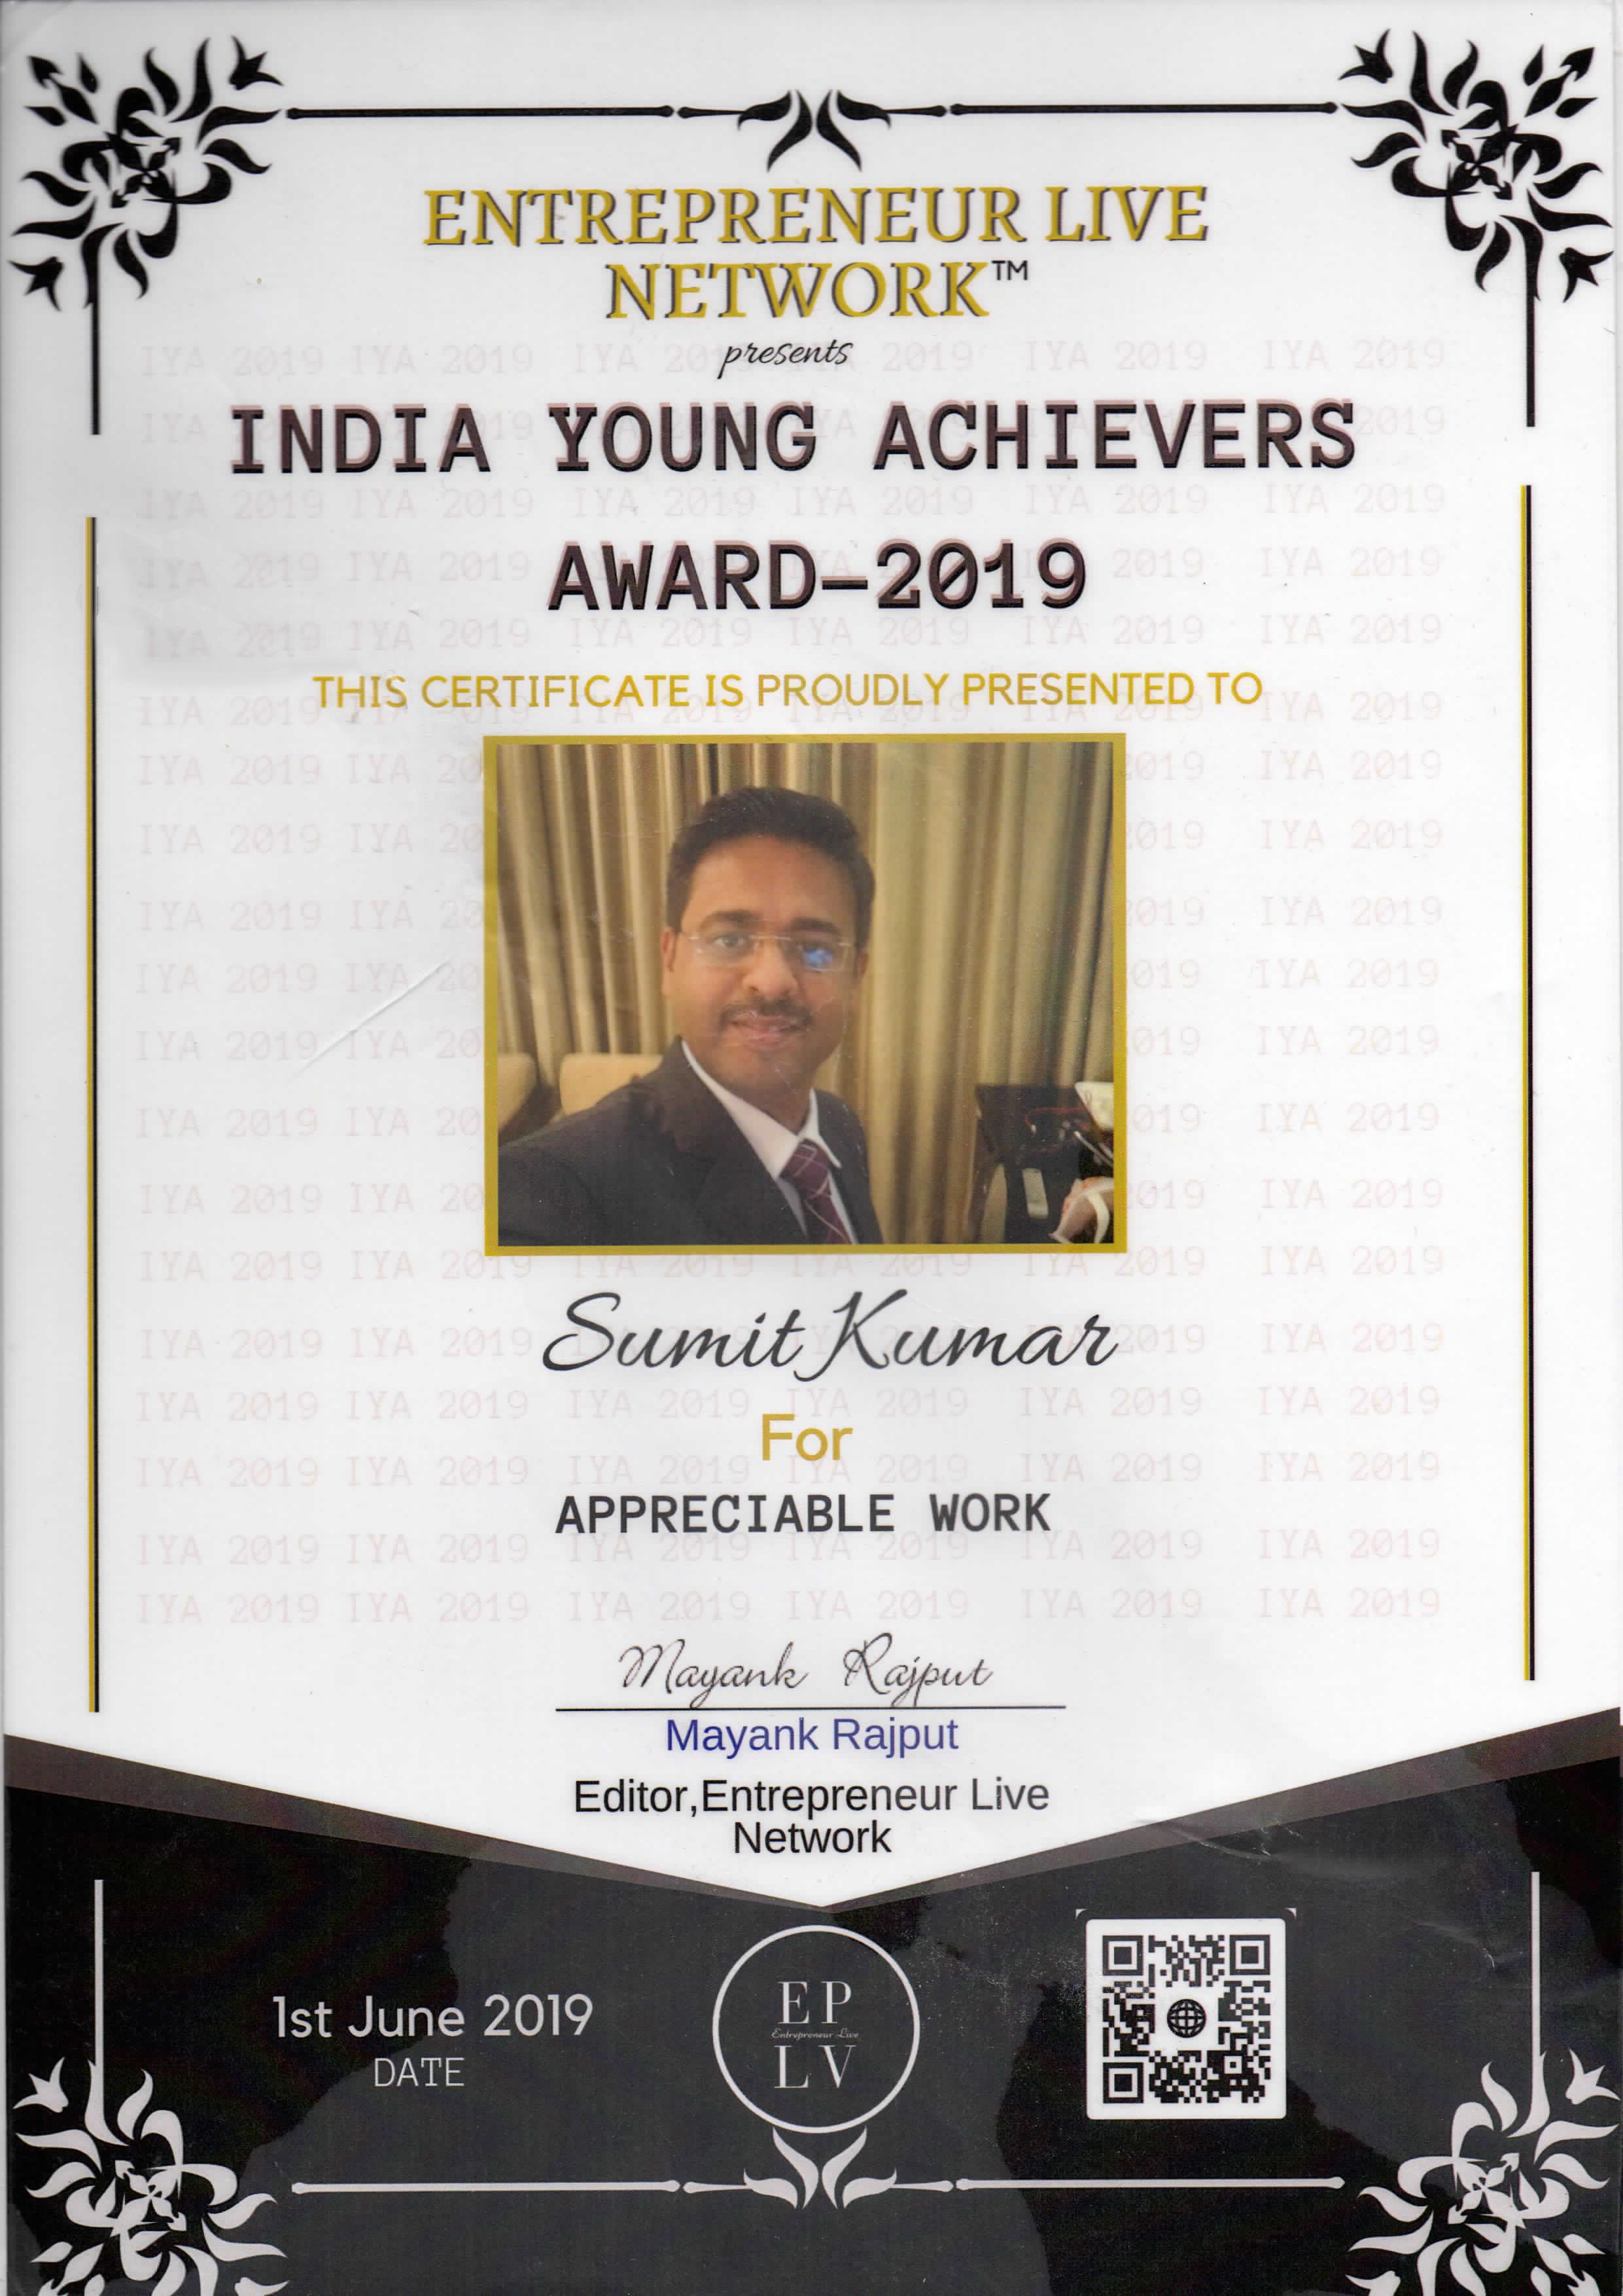 India Young Achievers Award